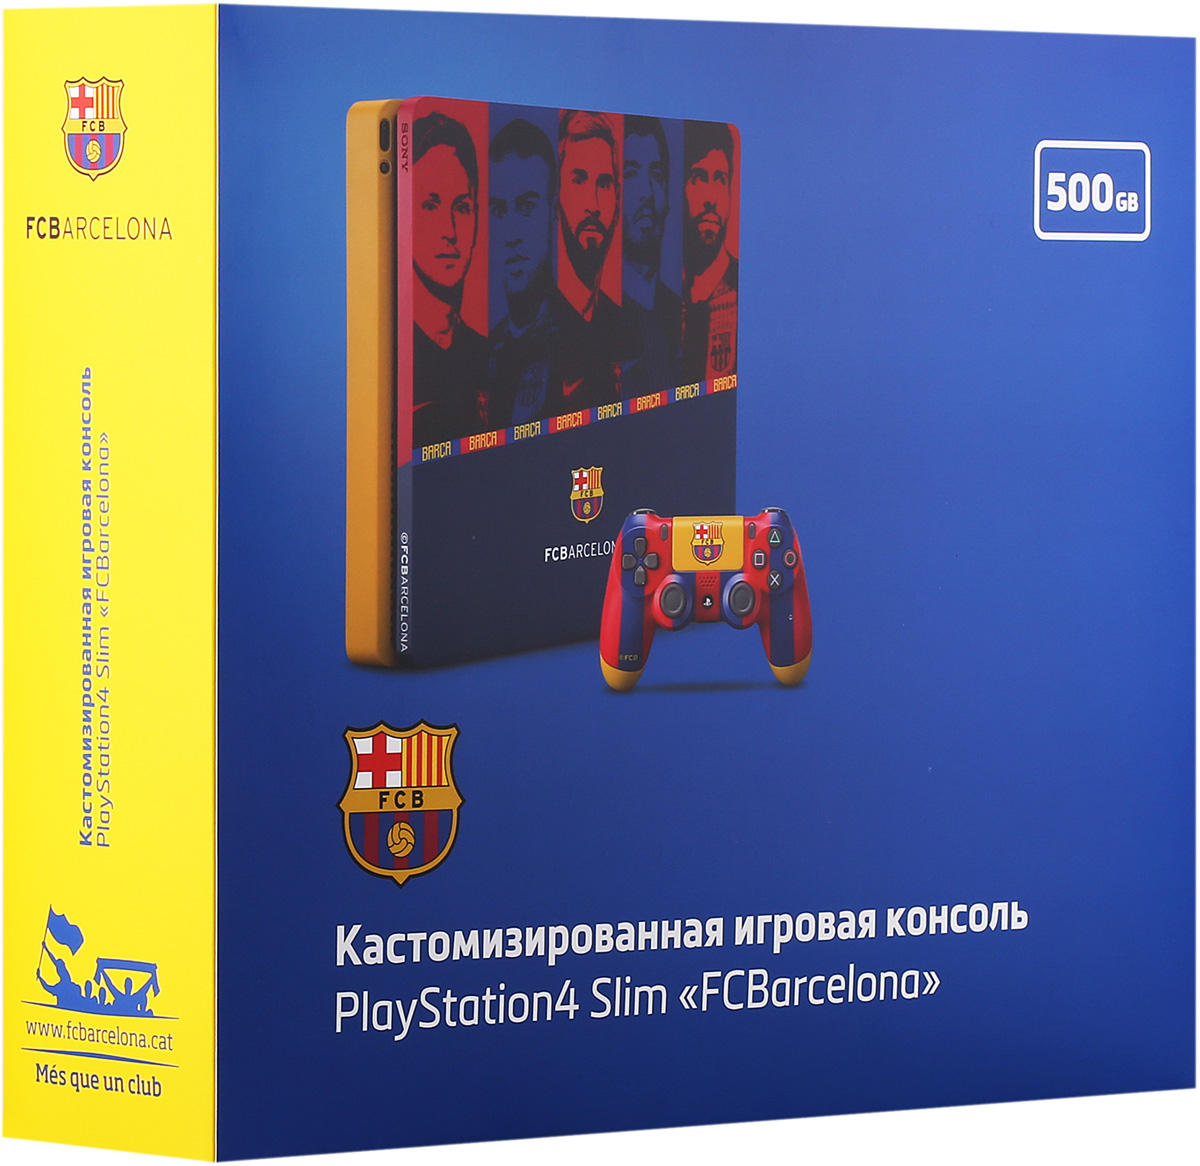 Игровая приставка Sony PlayStation 4 Slim Барселона. Камп Ноу (500 GB) приставка sony playstation 4 slim 1tb fifa18